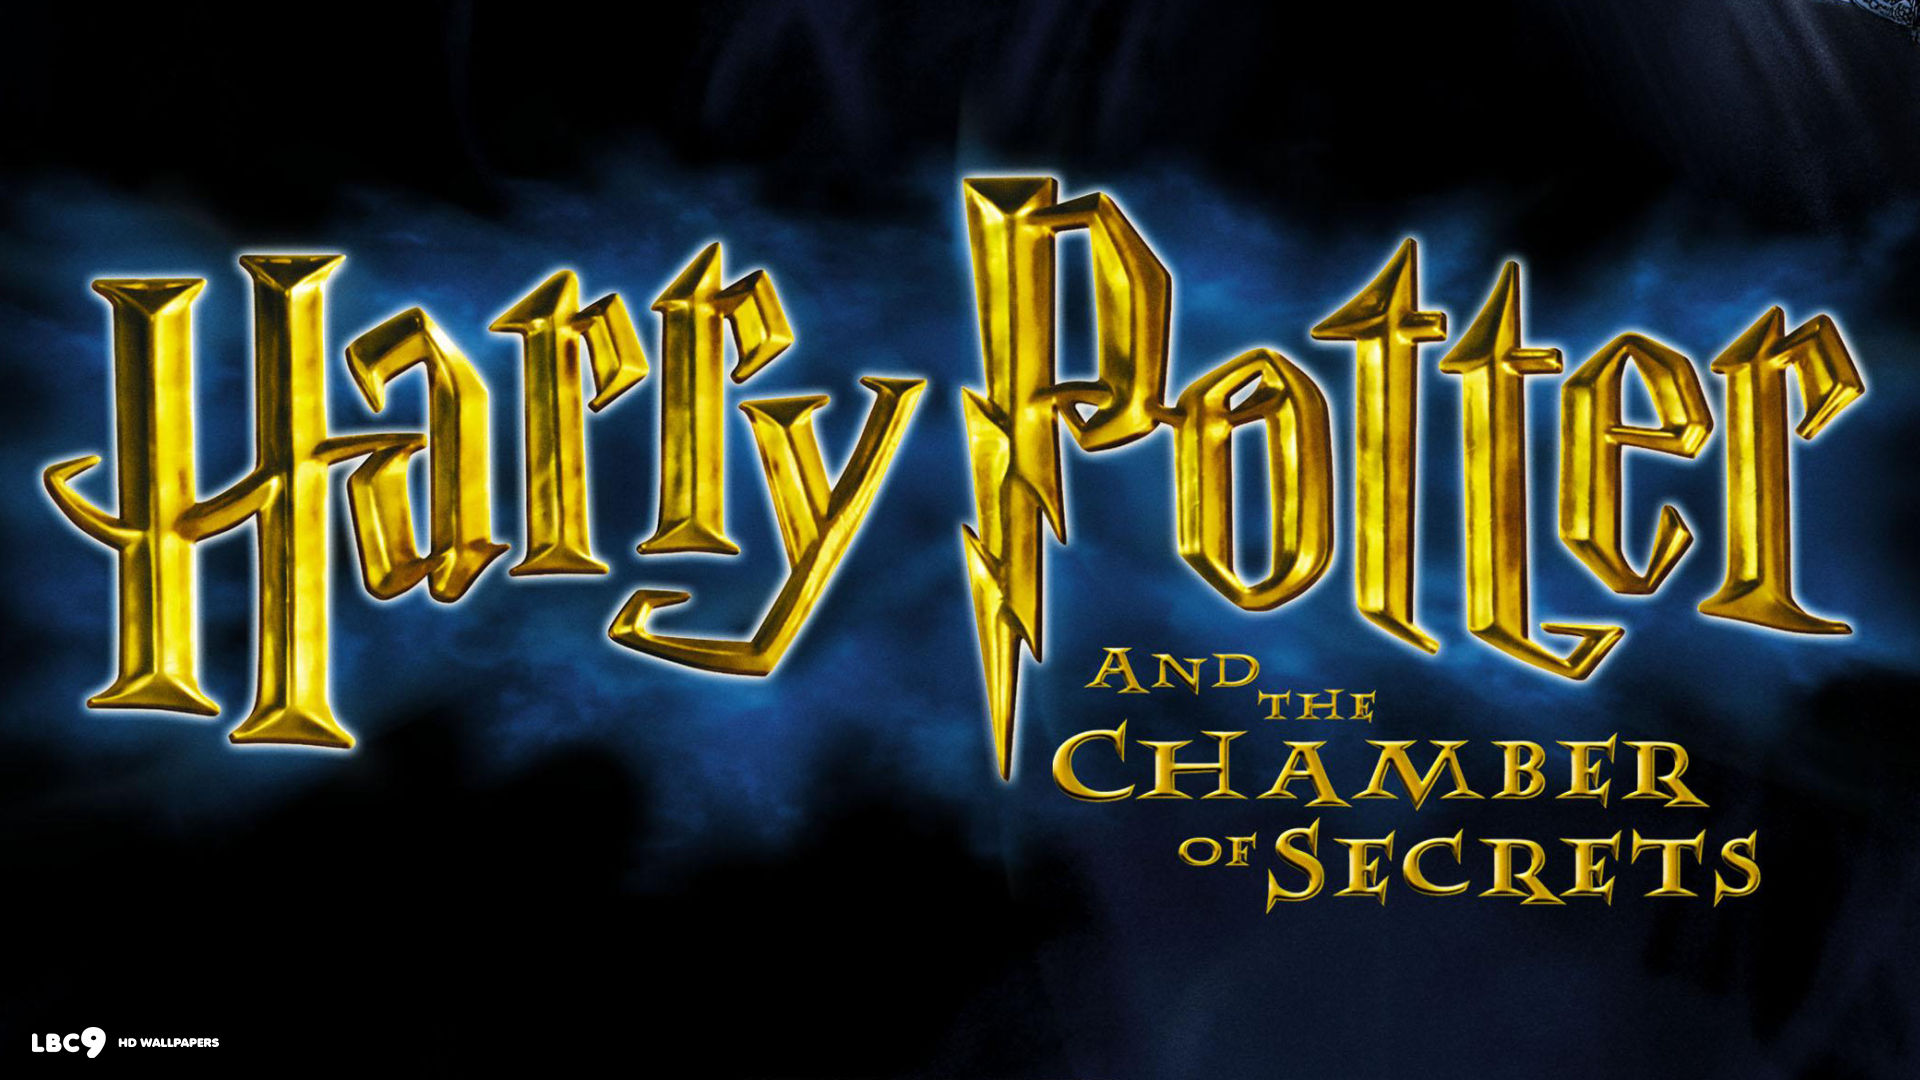 harry potter and the chamber of secrets wallpaper 1/5 | movie hd